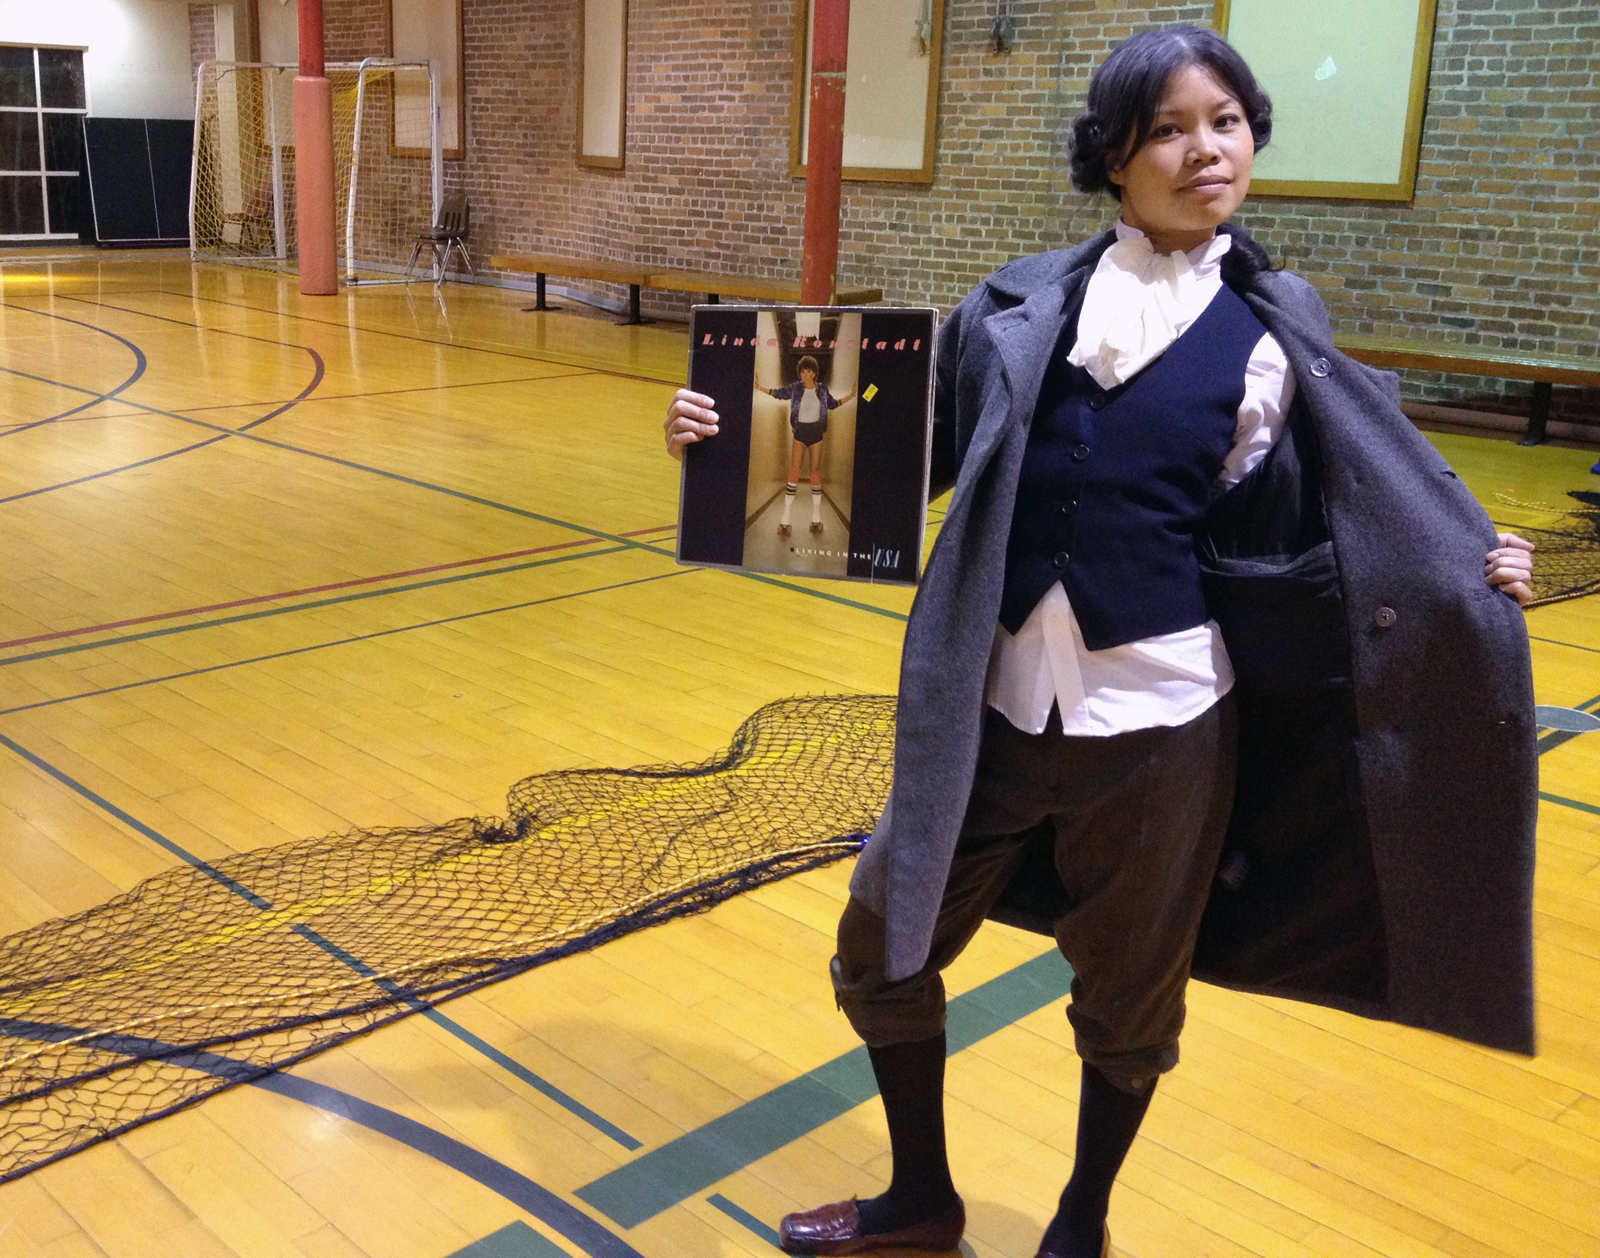 Grace, dressed as a young John Adams, wins the costume contest at open gym dodgeball at the Mission Recreation Center Monday night.